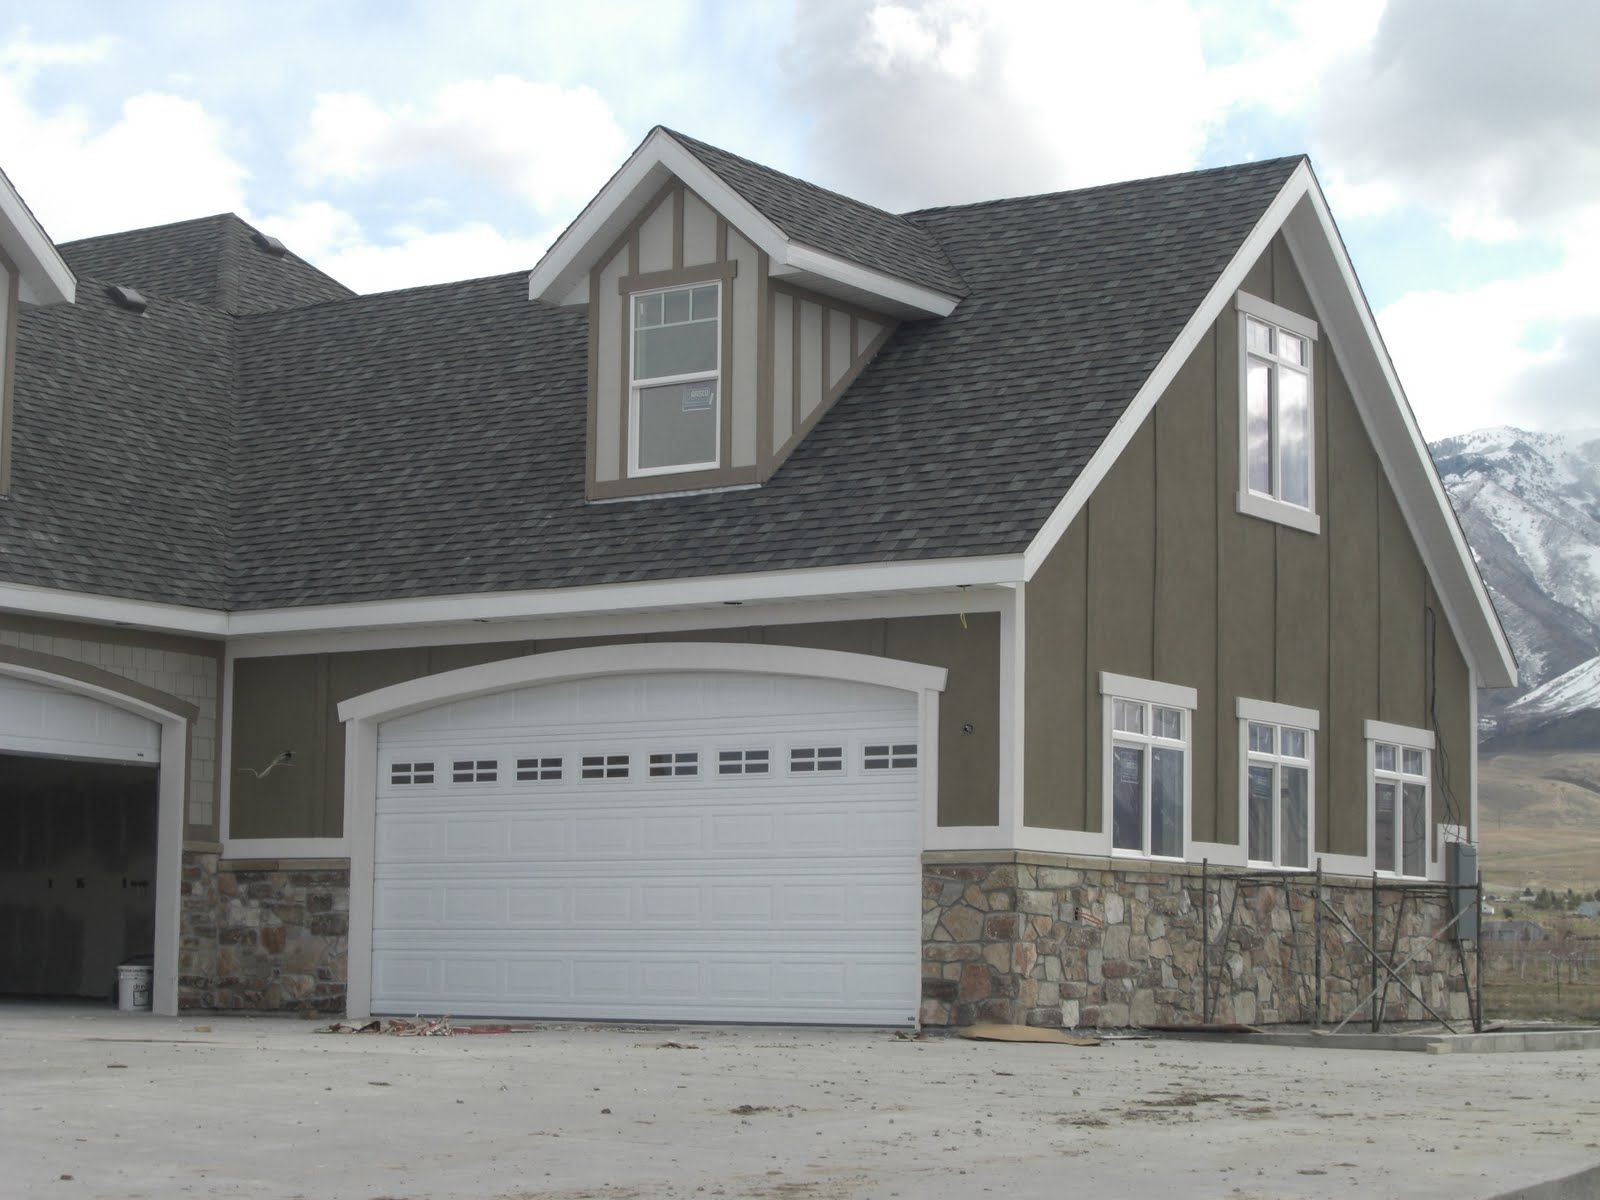 Pin by michelle underwood on new house pinterest for Stucco board siding